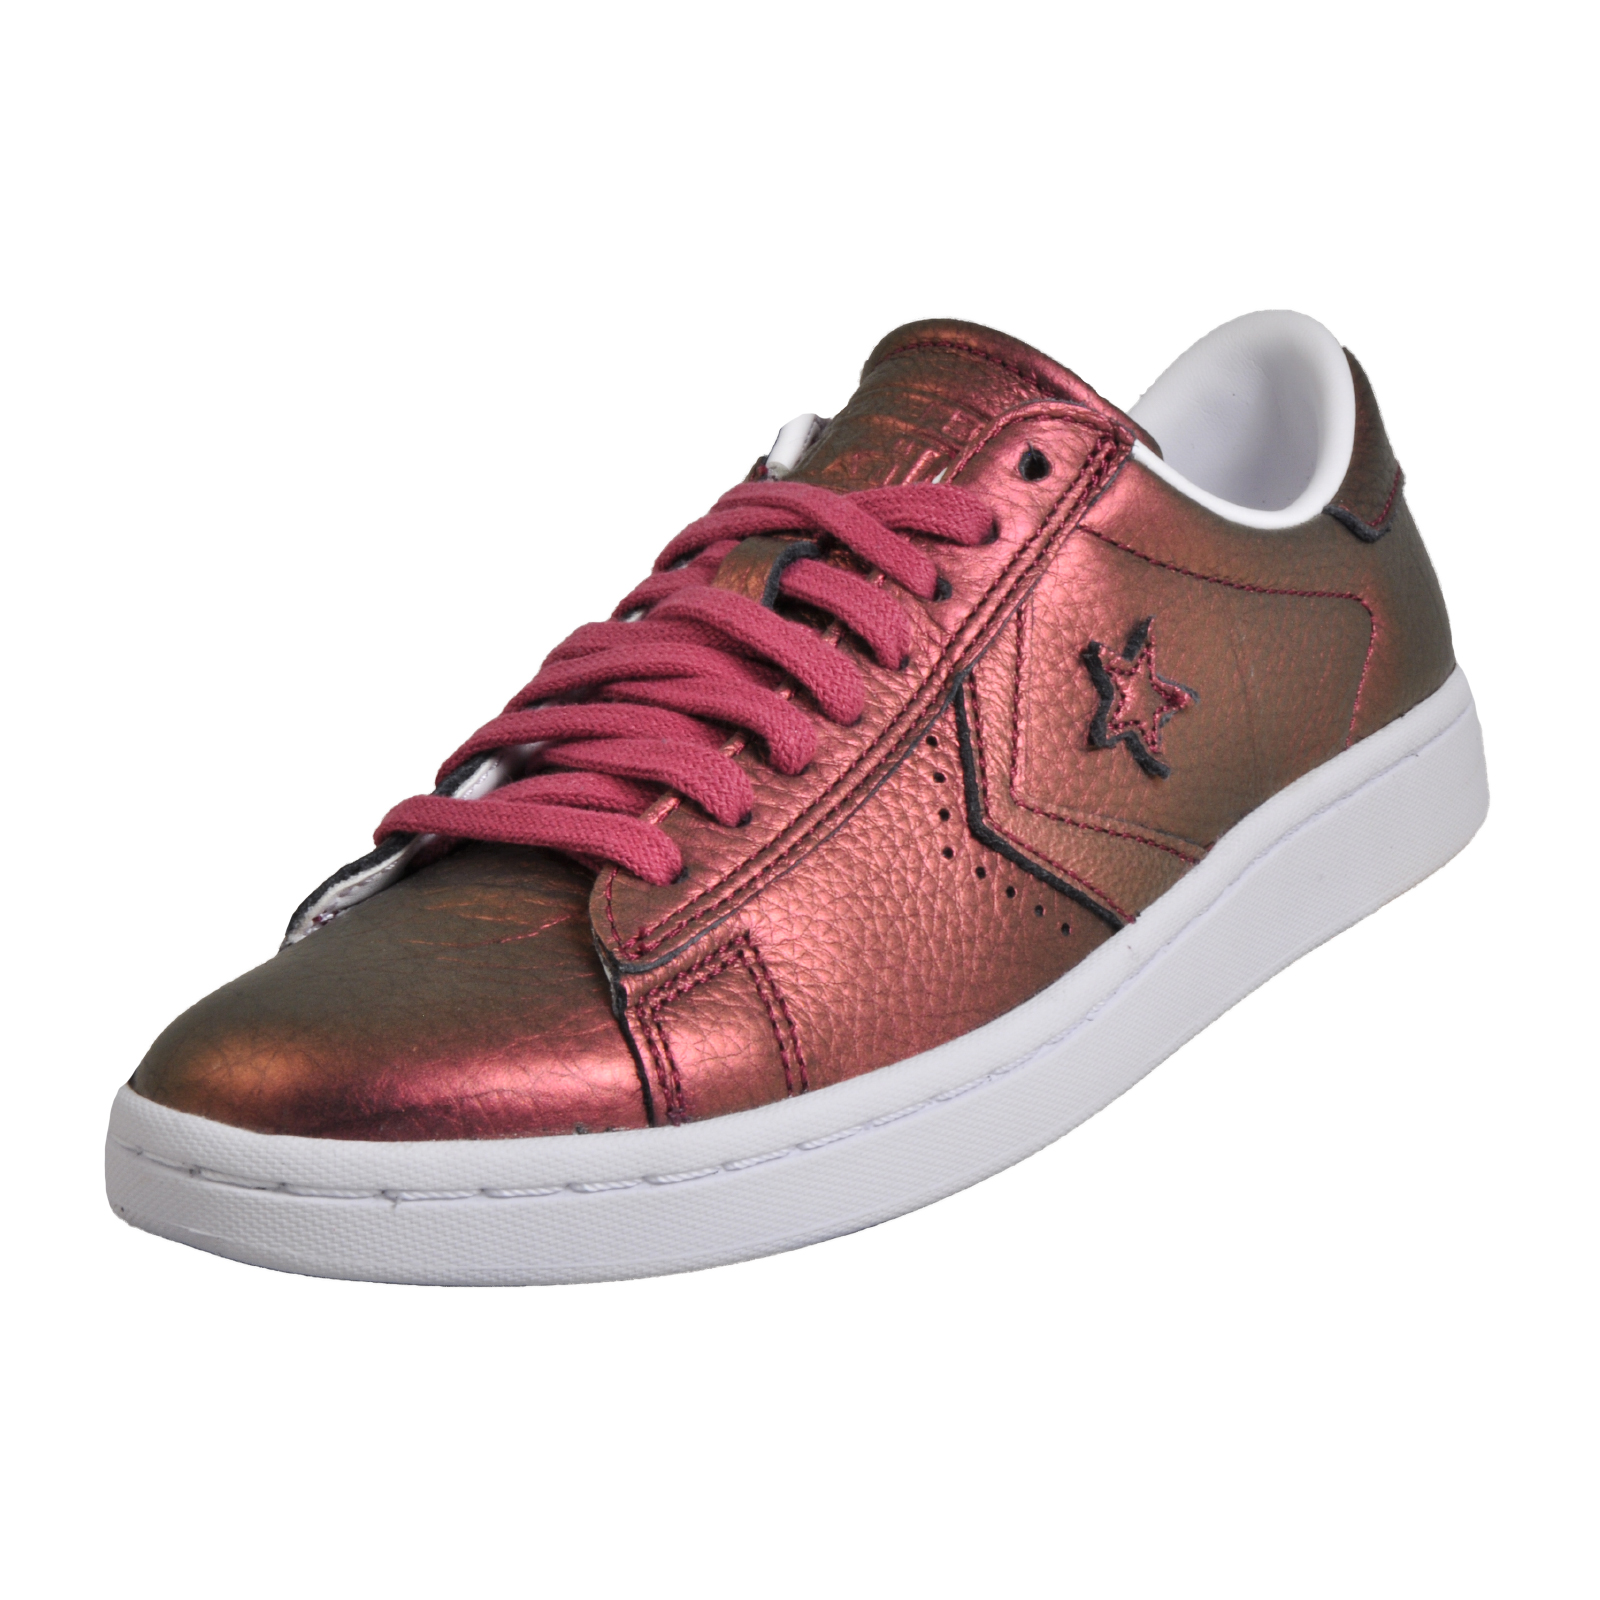 28c5707e301395 Converse Star Player All Star Women s Pro Leather LP Ox Low Vintage Plimsol  Trainers